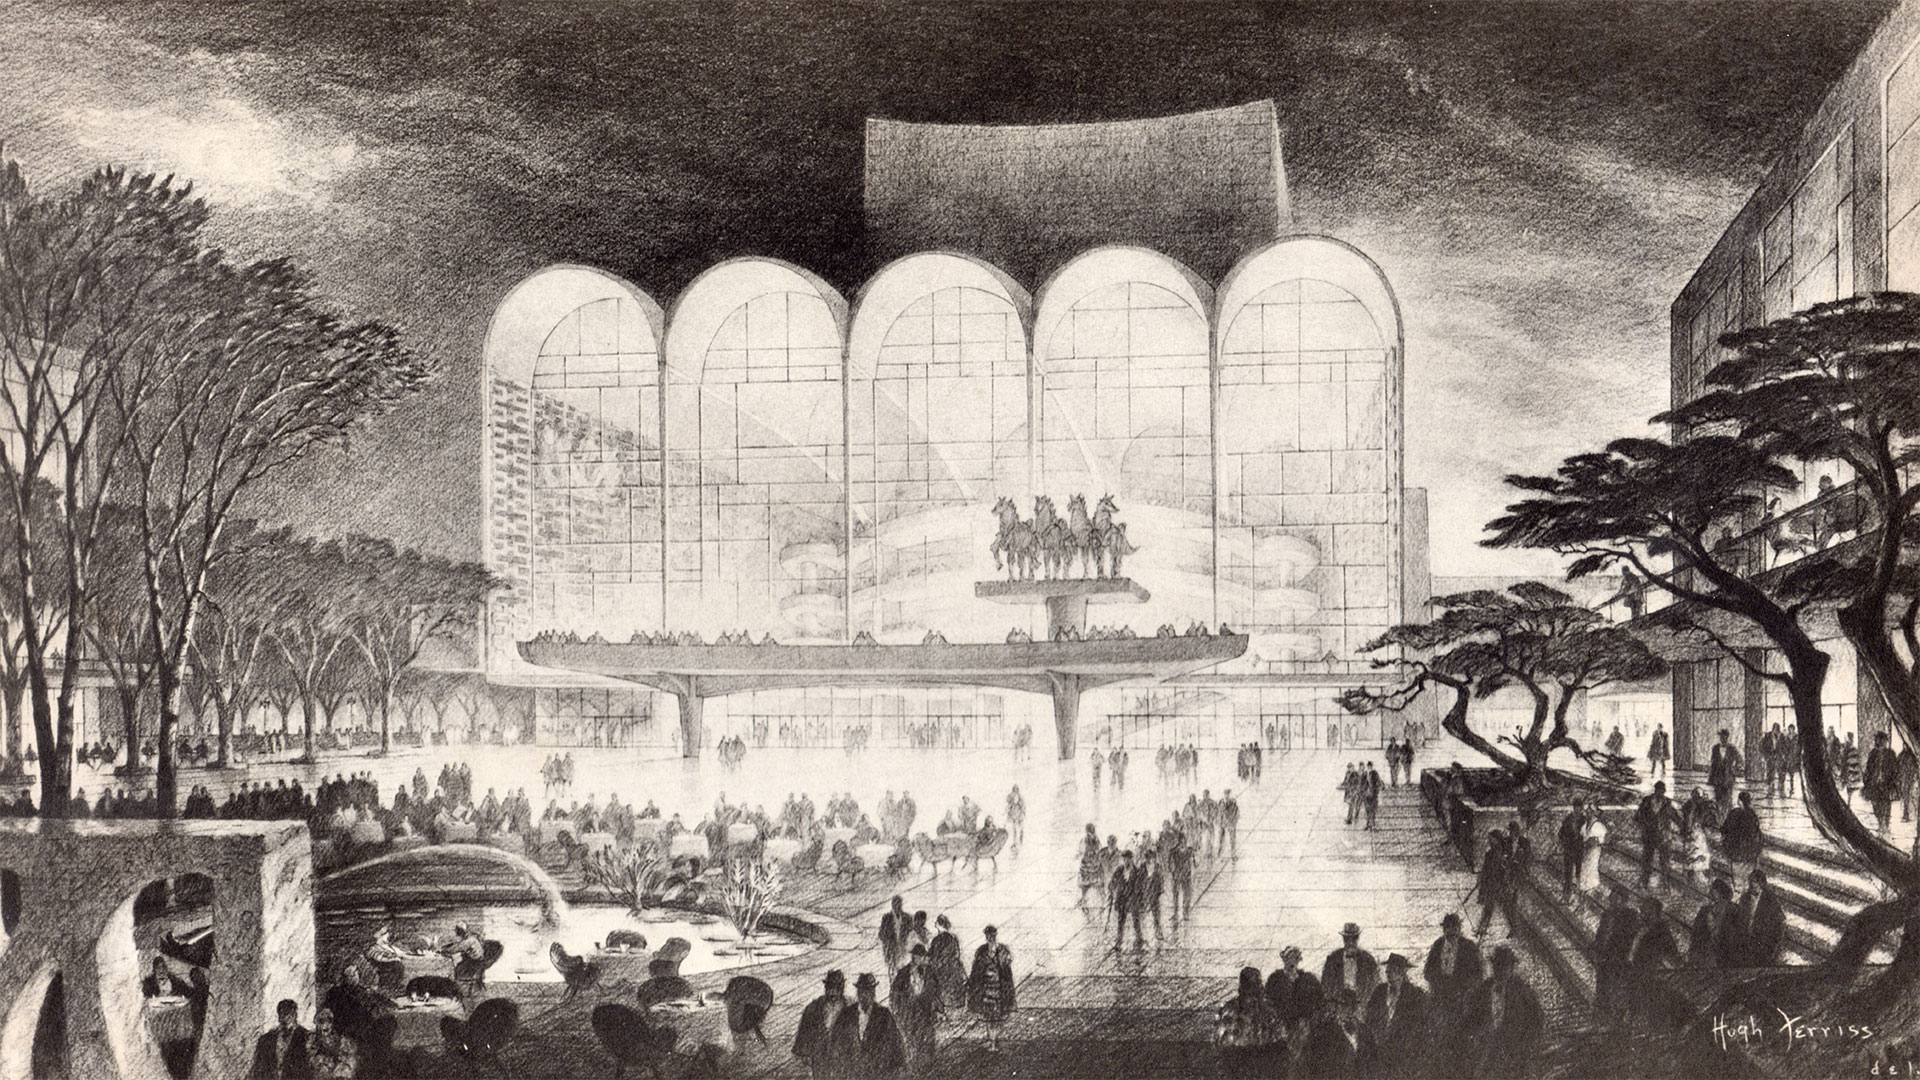 An early Wallace K. Harrison design for the new opera house at Lincoln Center